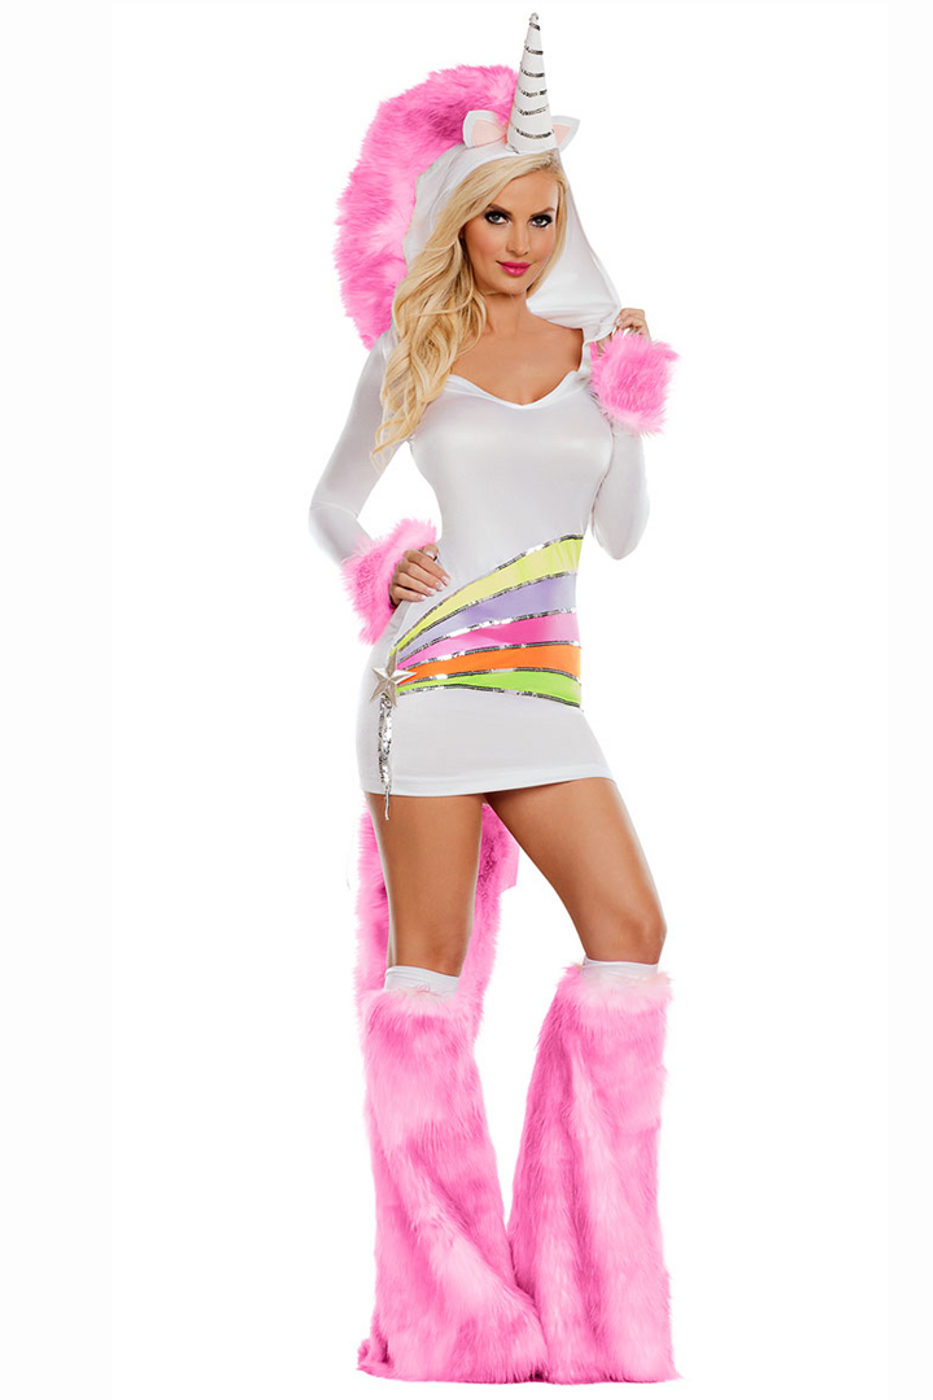 cc9b9fdbdf6 Shop this women s sexy rainbow unicorn costume featuring a white long  sleeve dress with silver sparkles